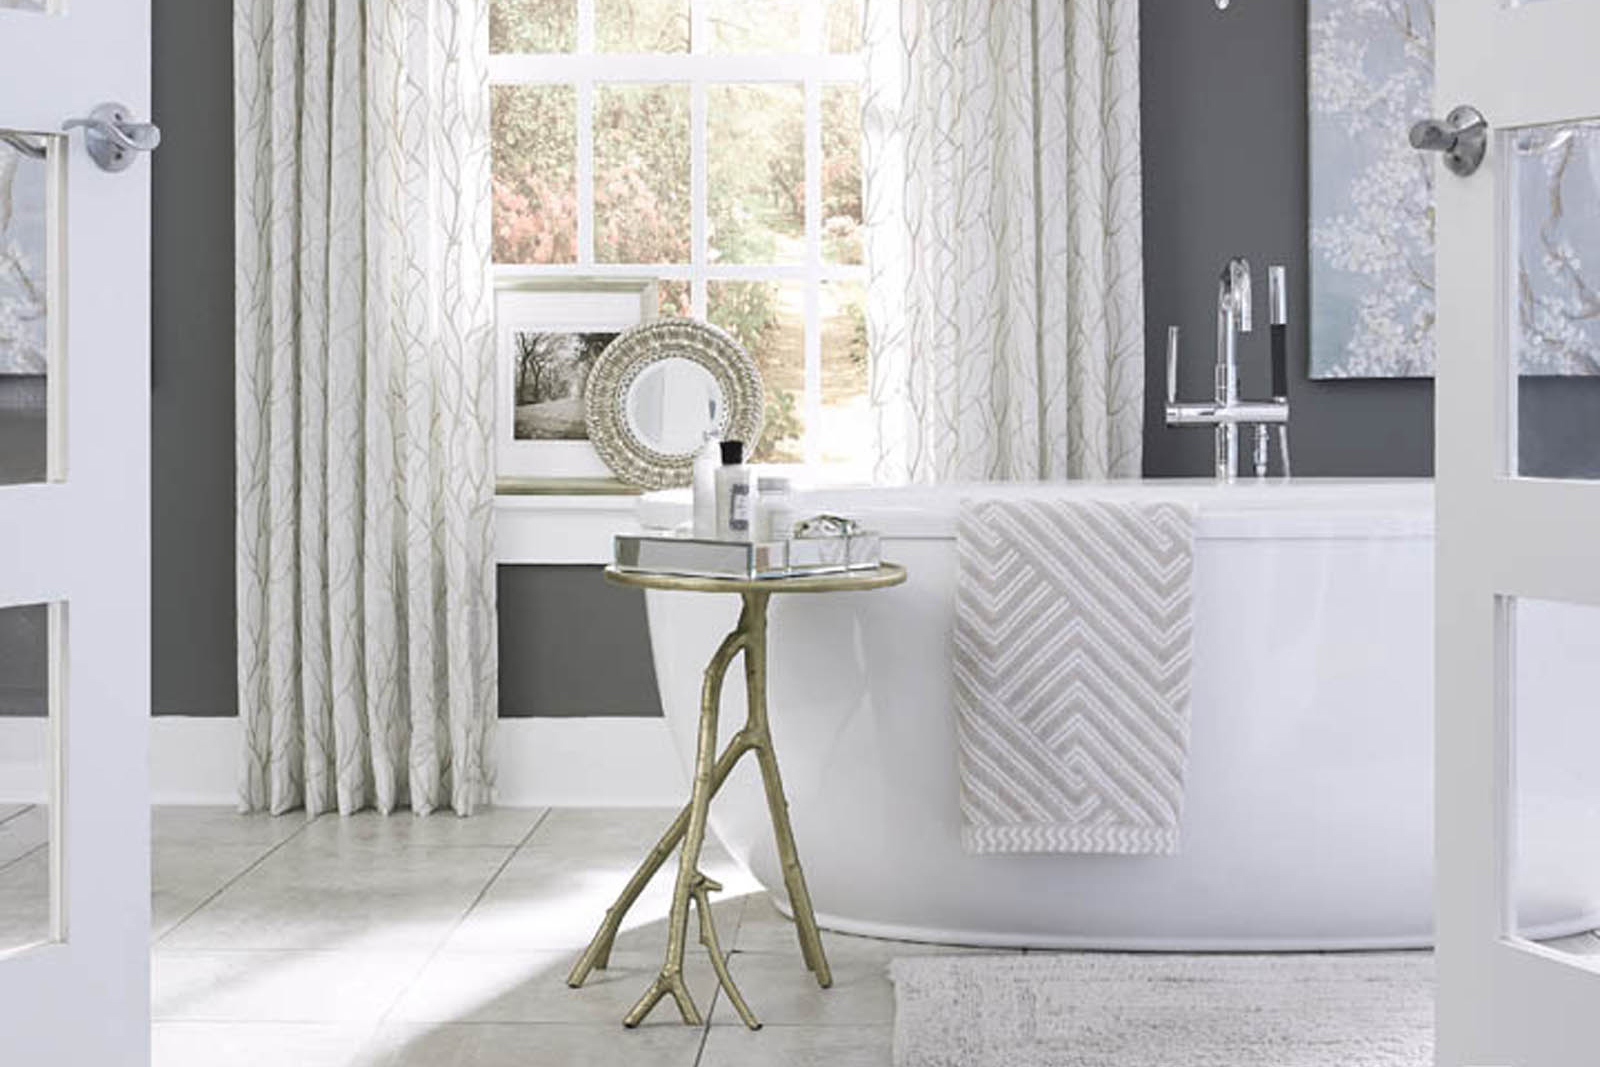 top interior designer designs master bathroom remodel with grey and white accents and a large bathtub